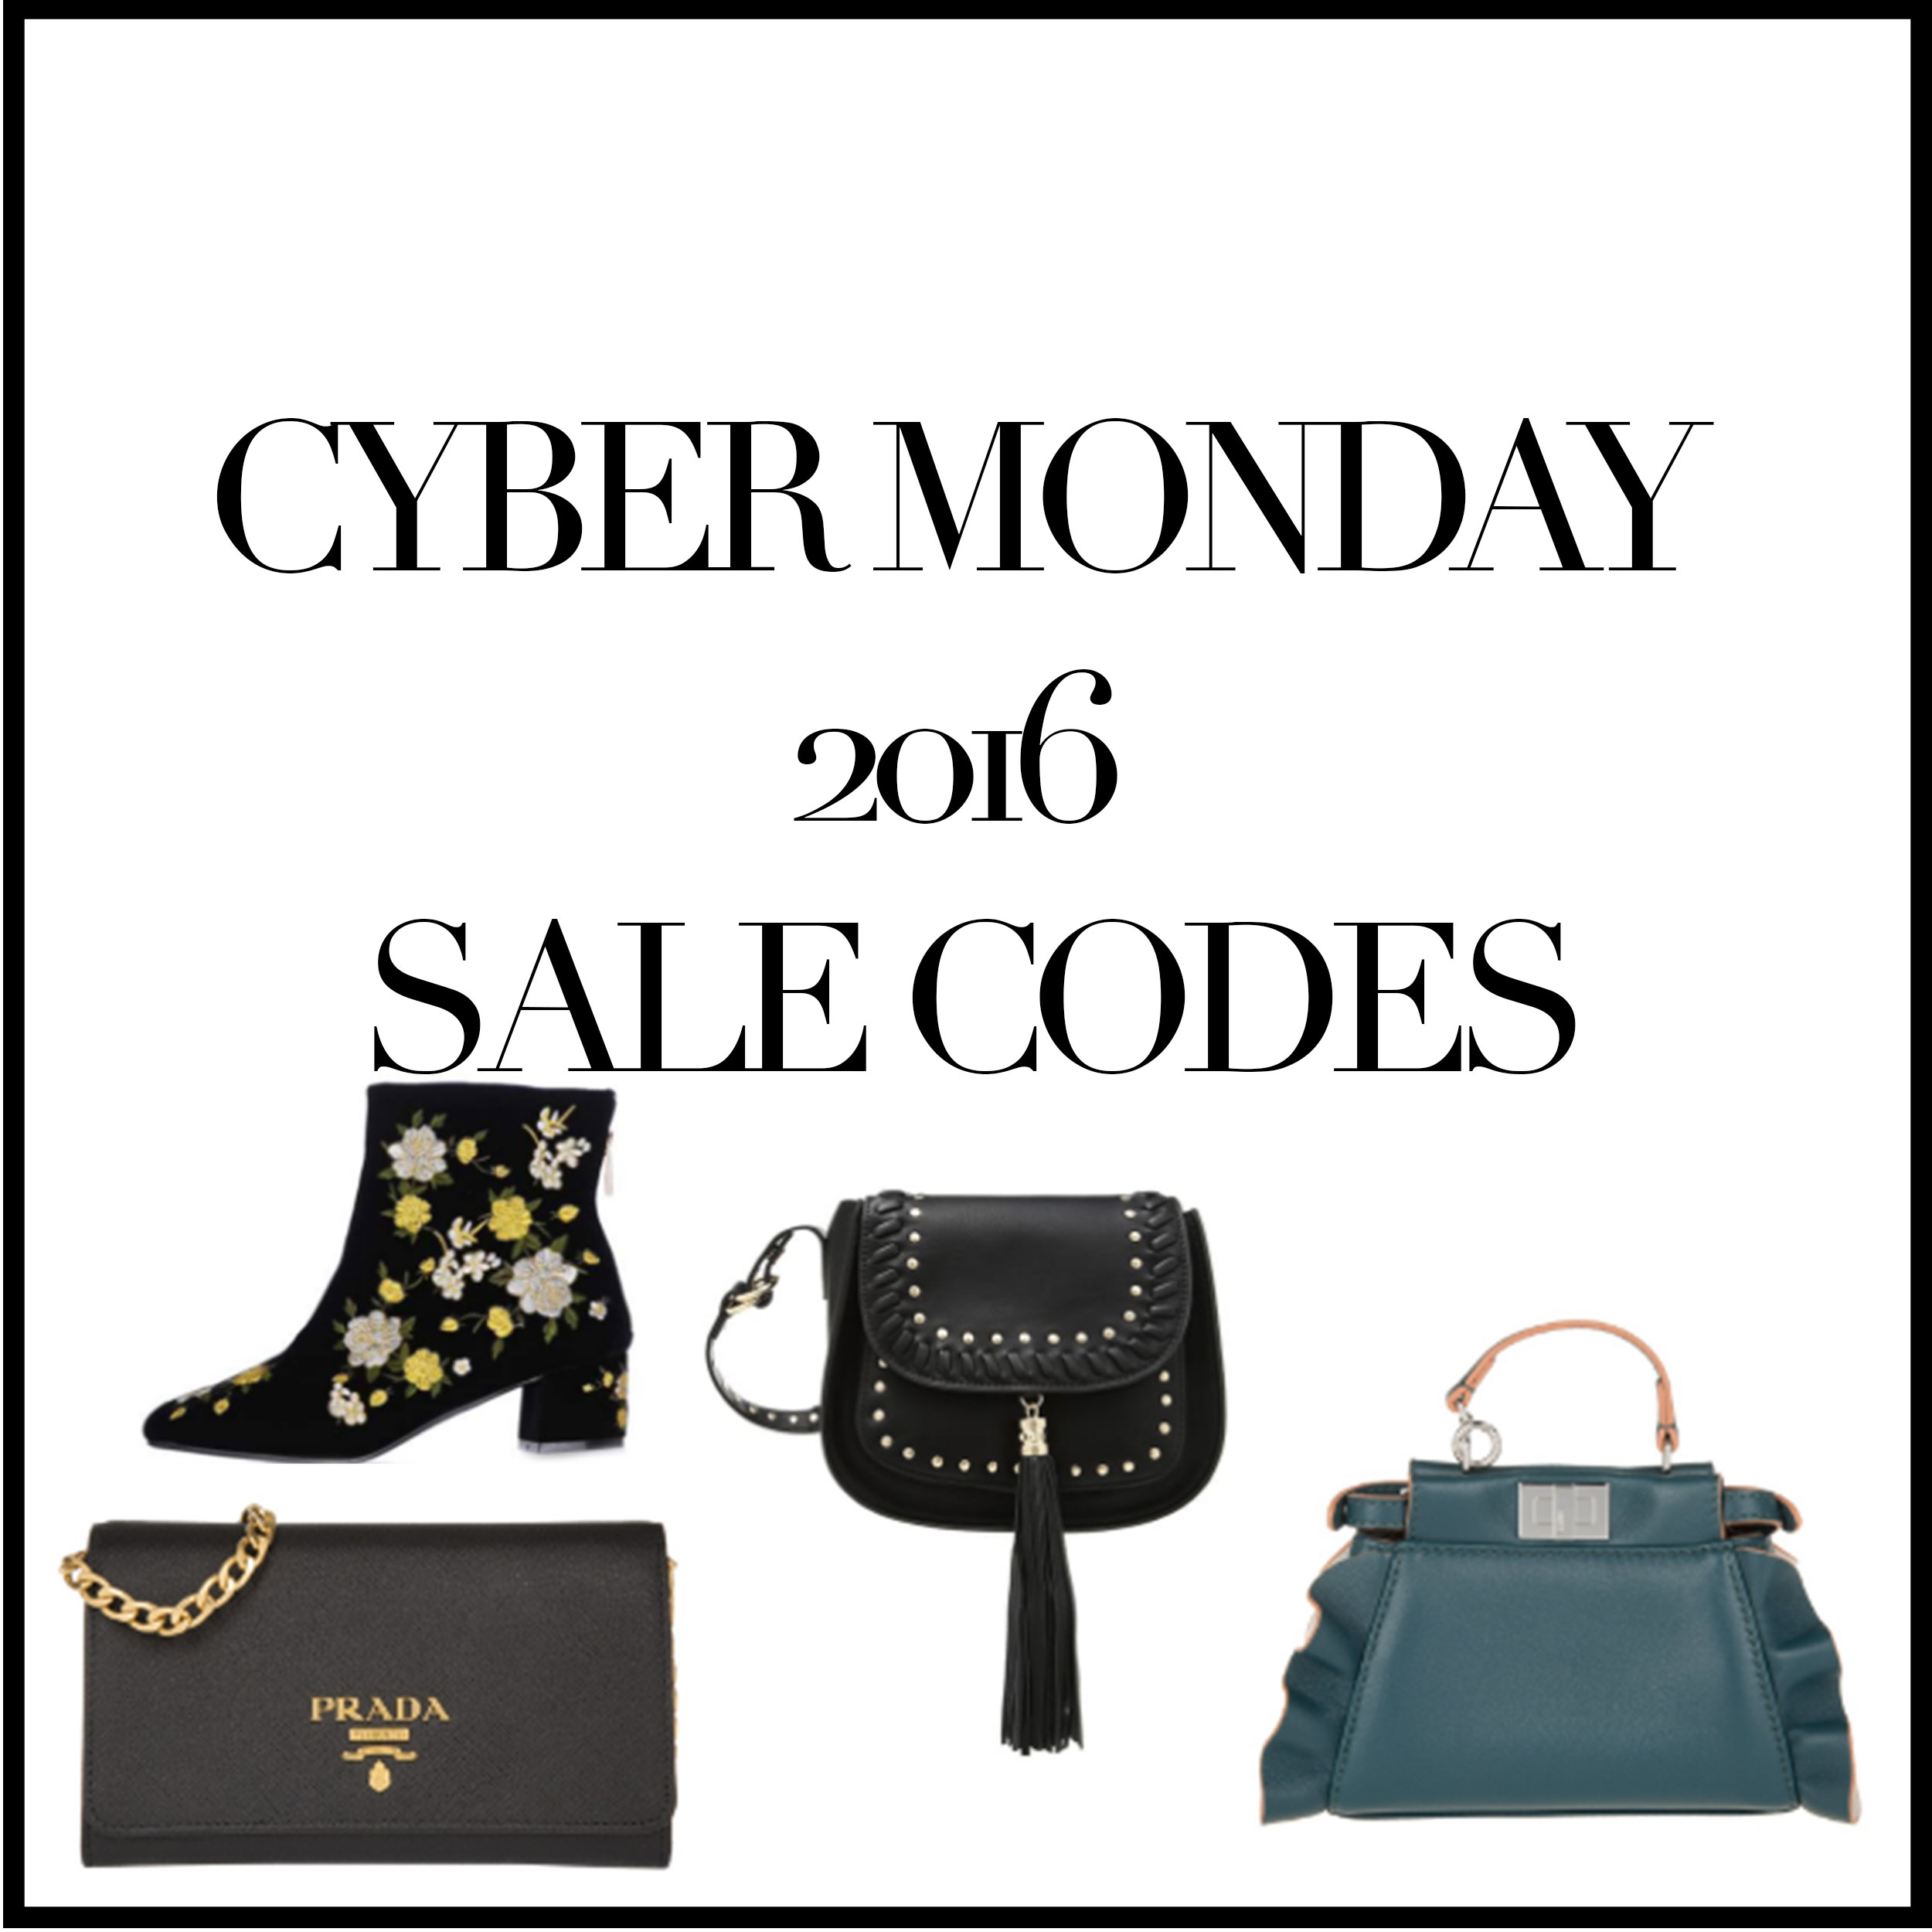 CYBER MONDAY 2016 SALE CODES – DIE BESTEN DEALS!